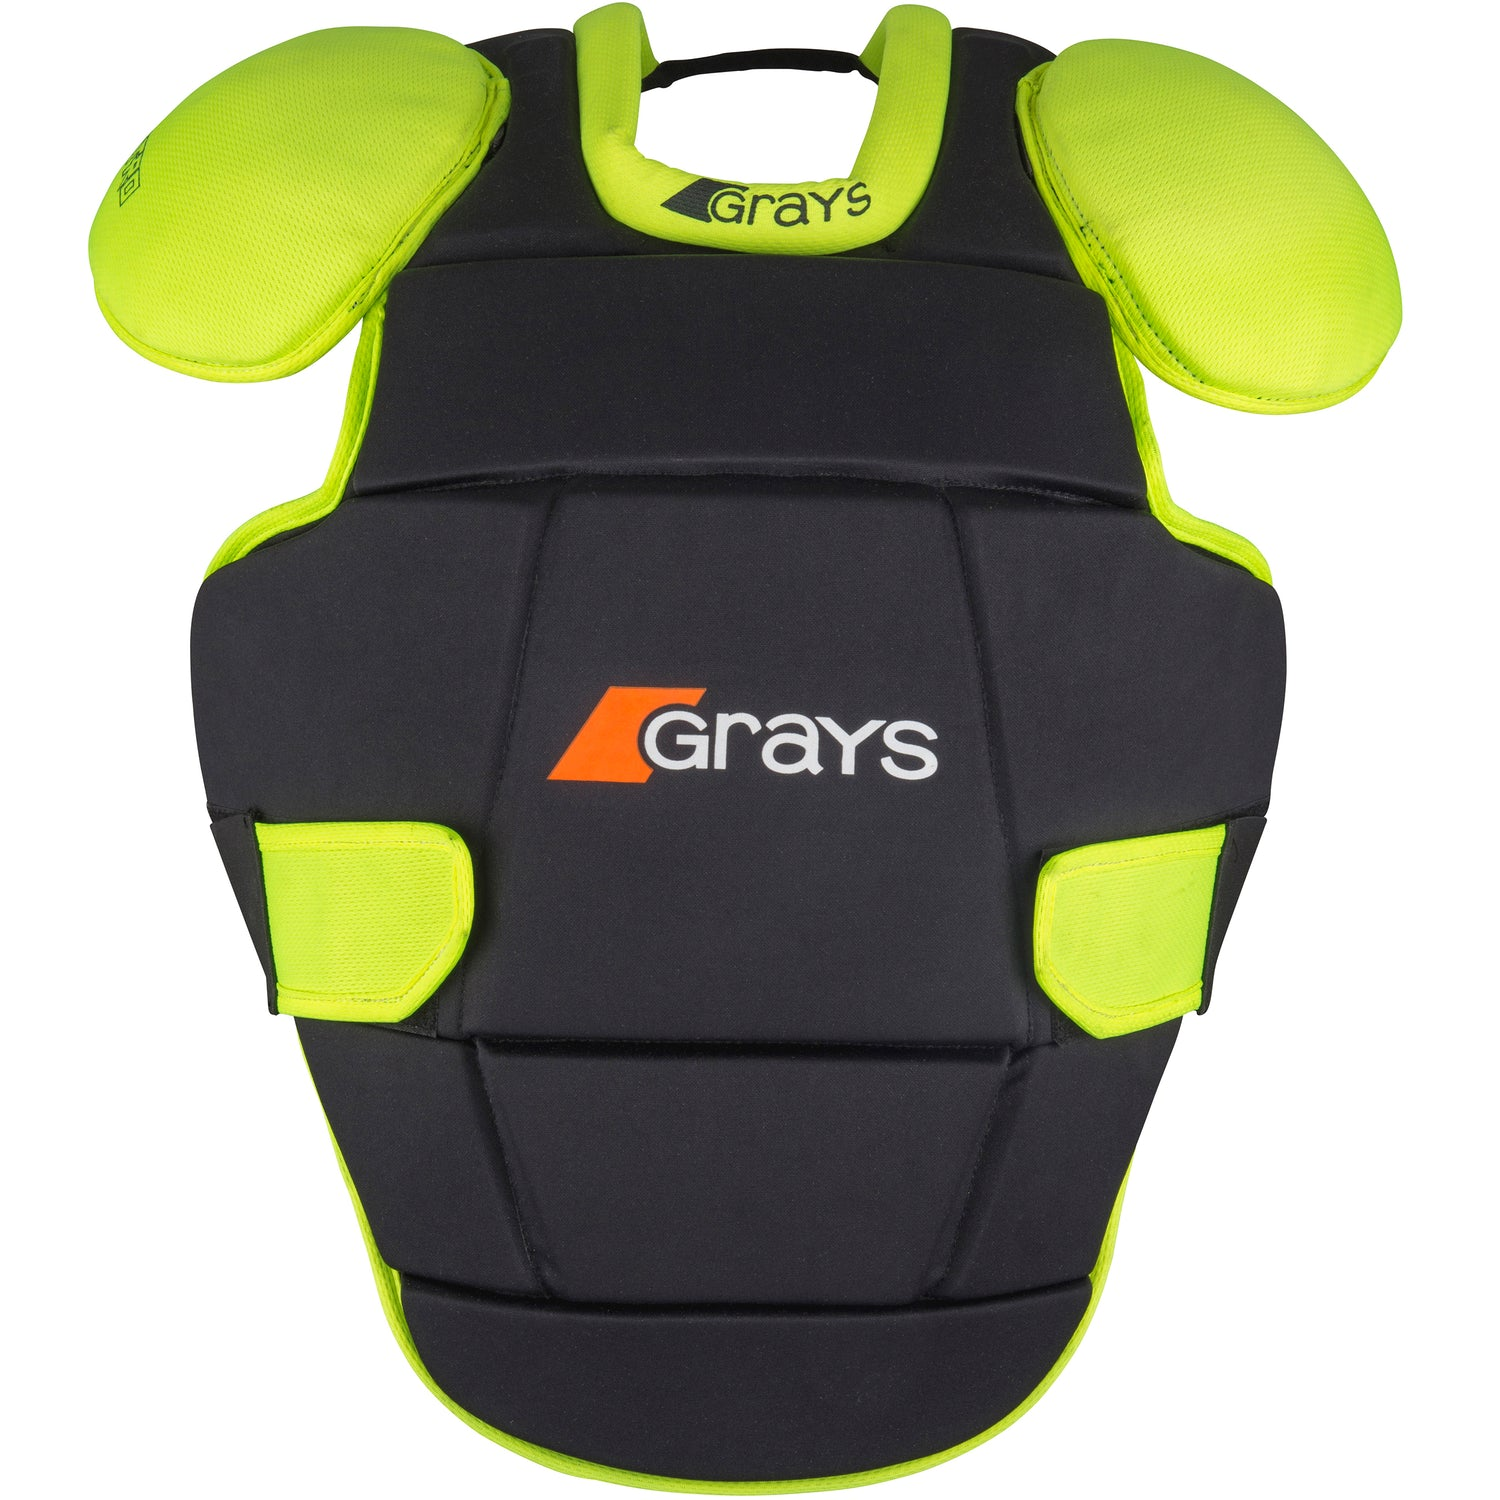 844cec3c2c5 Nitro Body Armour – Grays Hockey